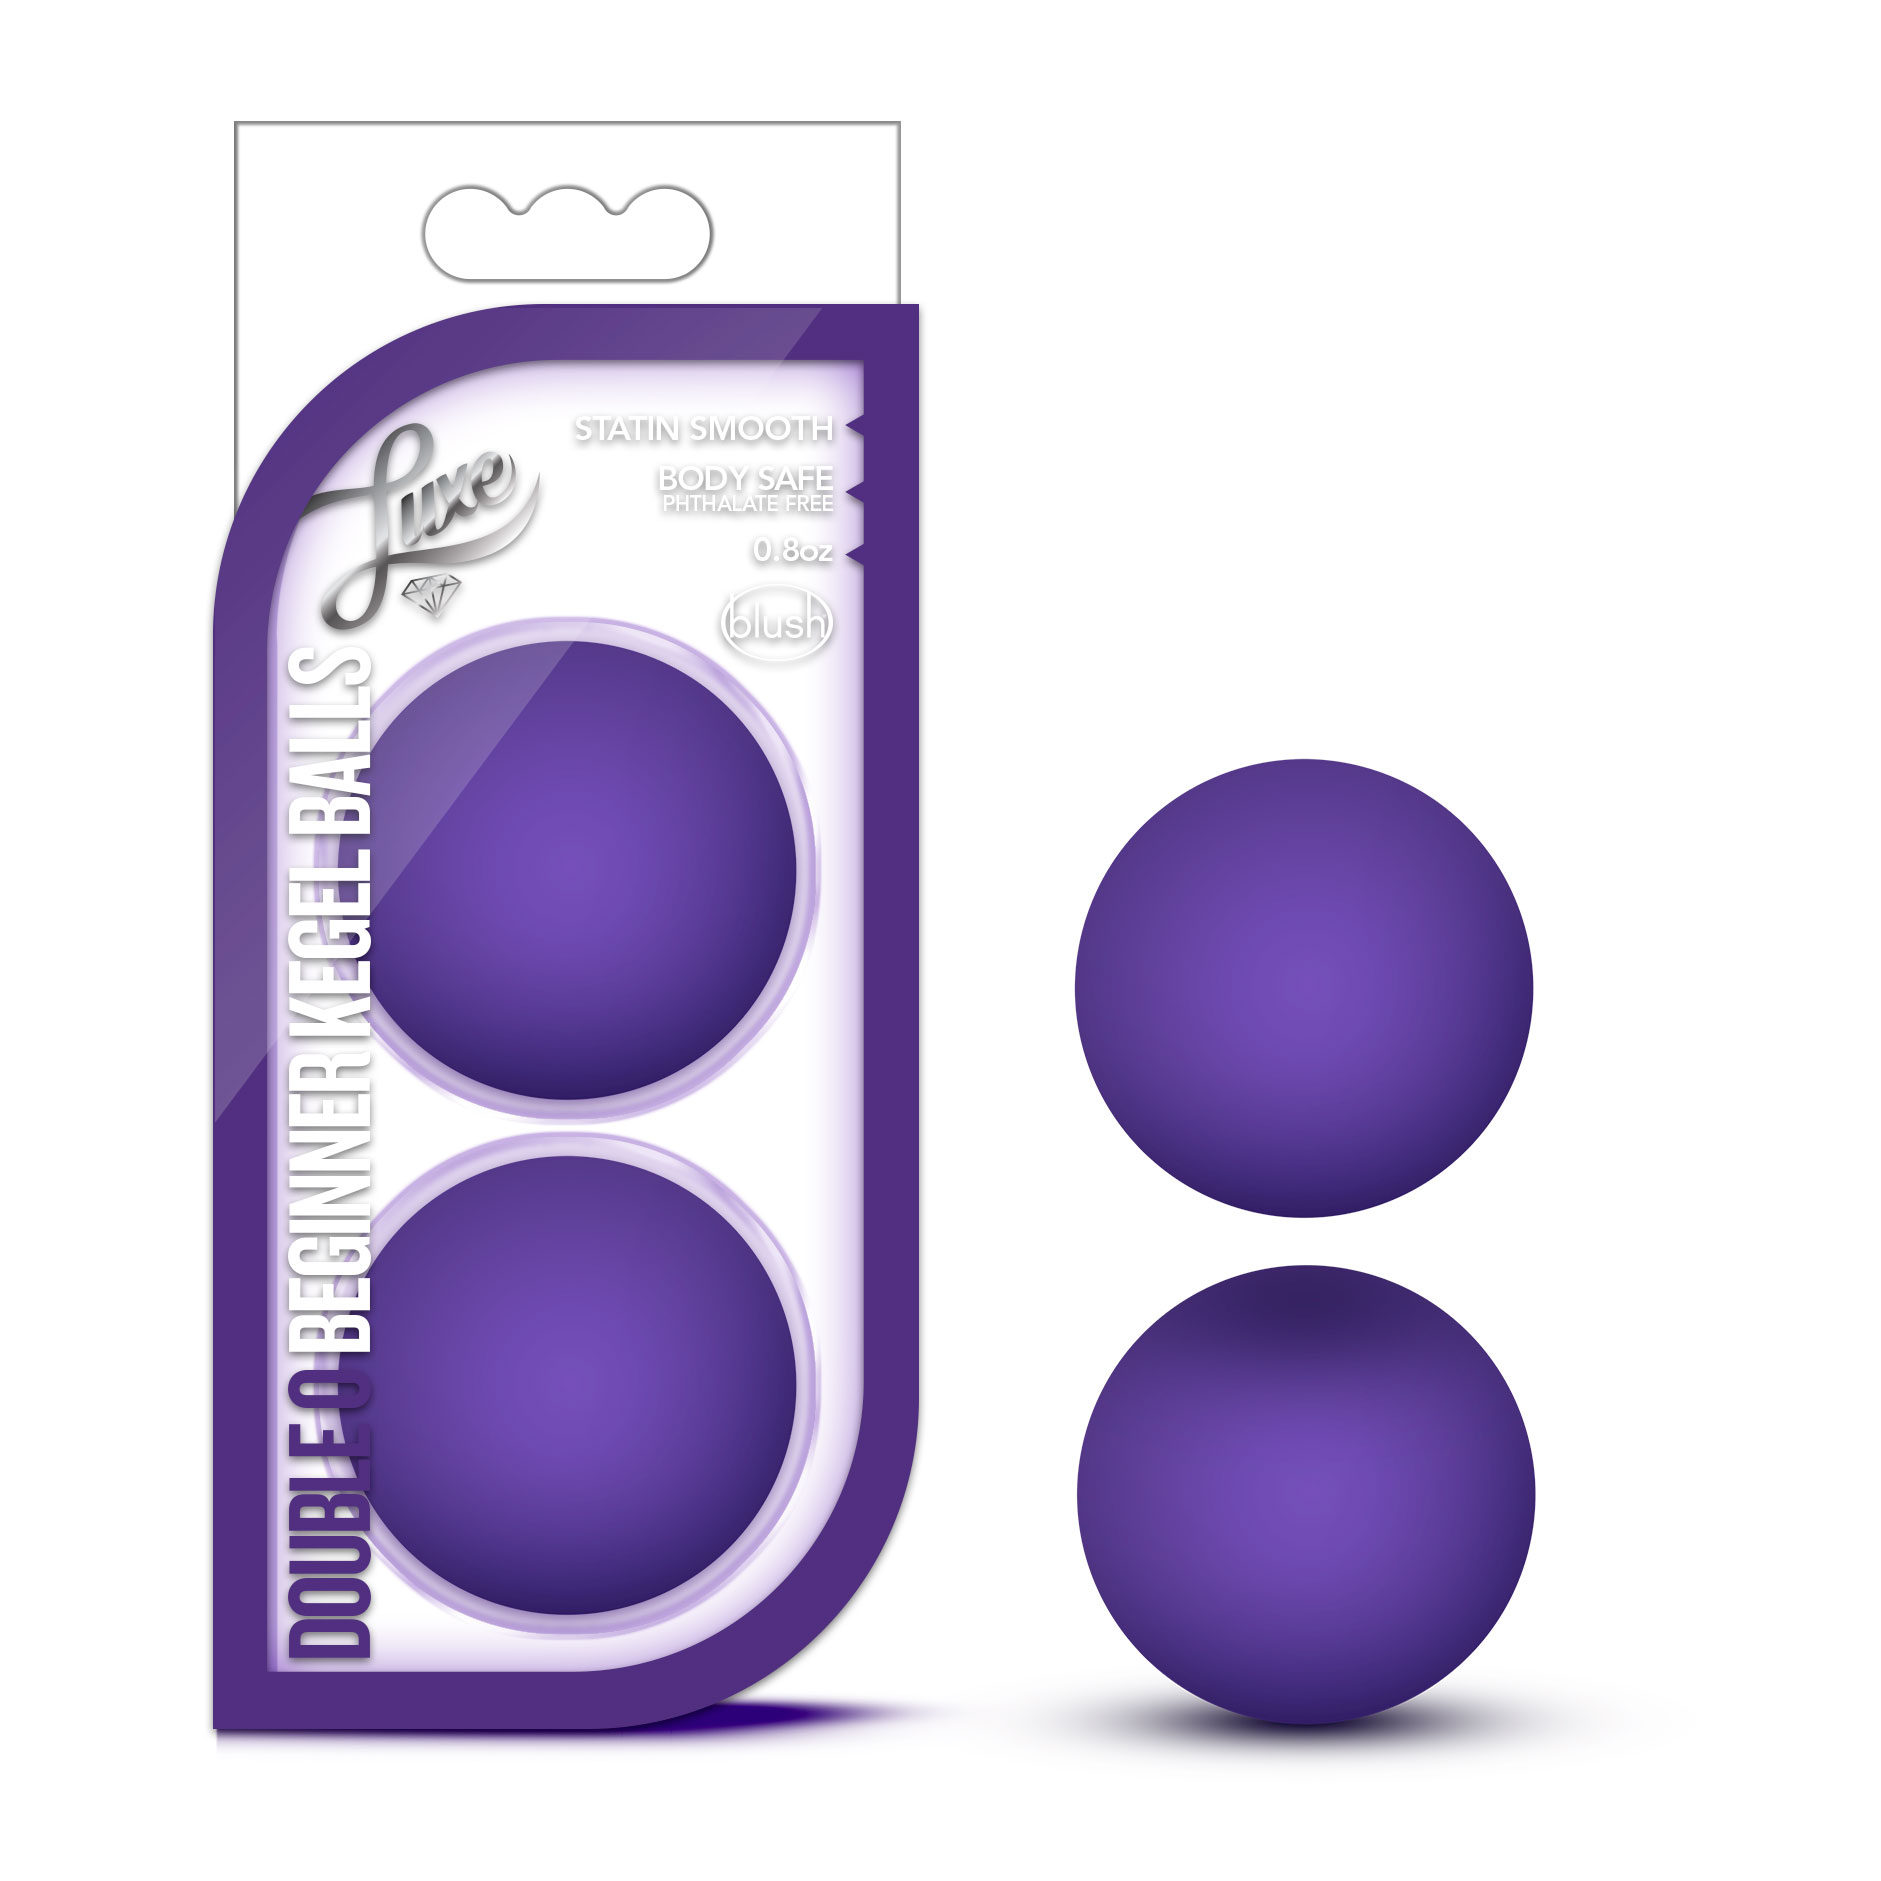 Luxe - Double O Beginner Kegel Balls - Purple